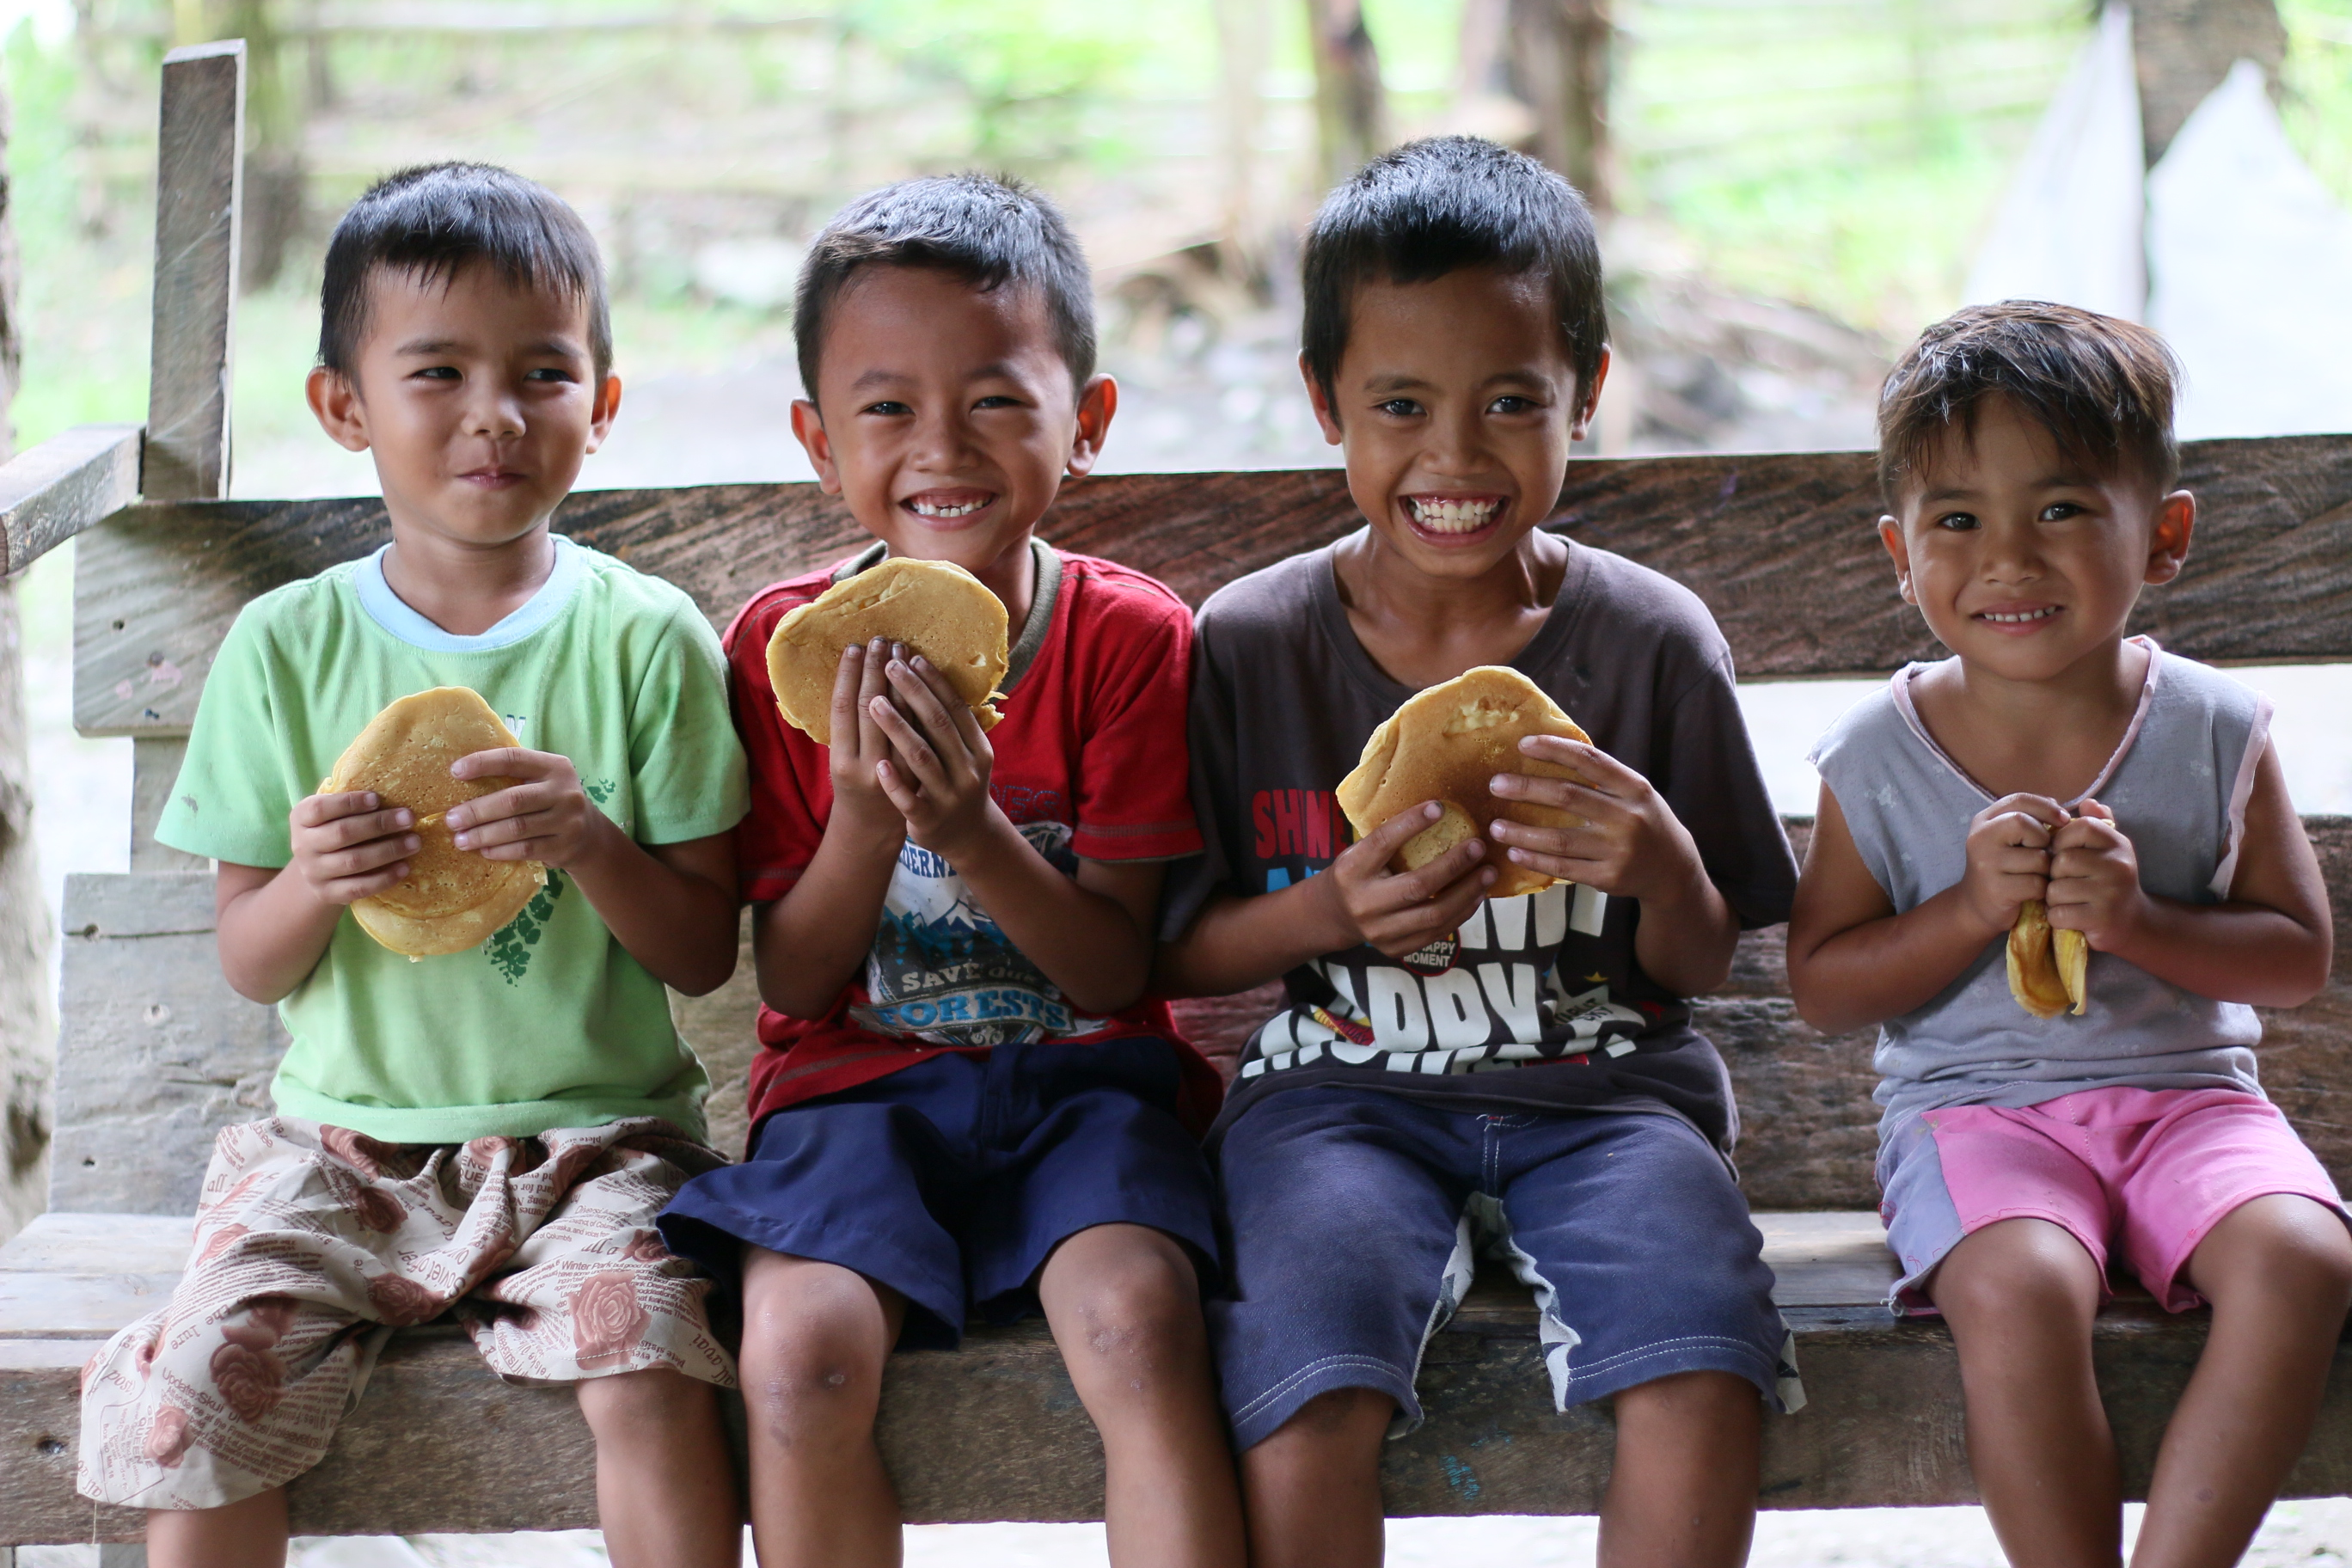 6-year-old Kenneth (red top) and his friends, in the Philippines, enjoy freshly cooked pancakes together